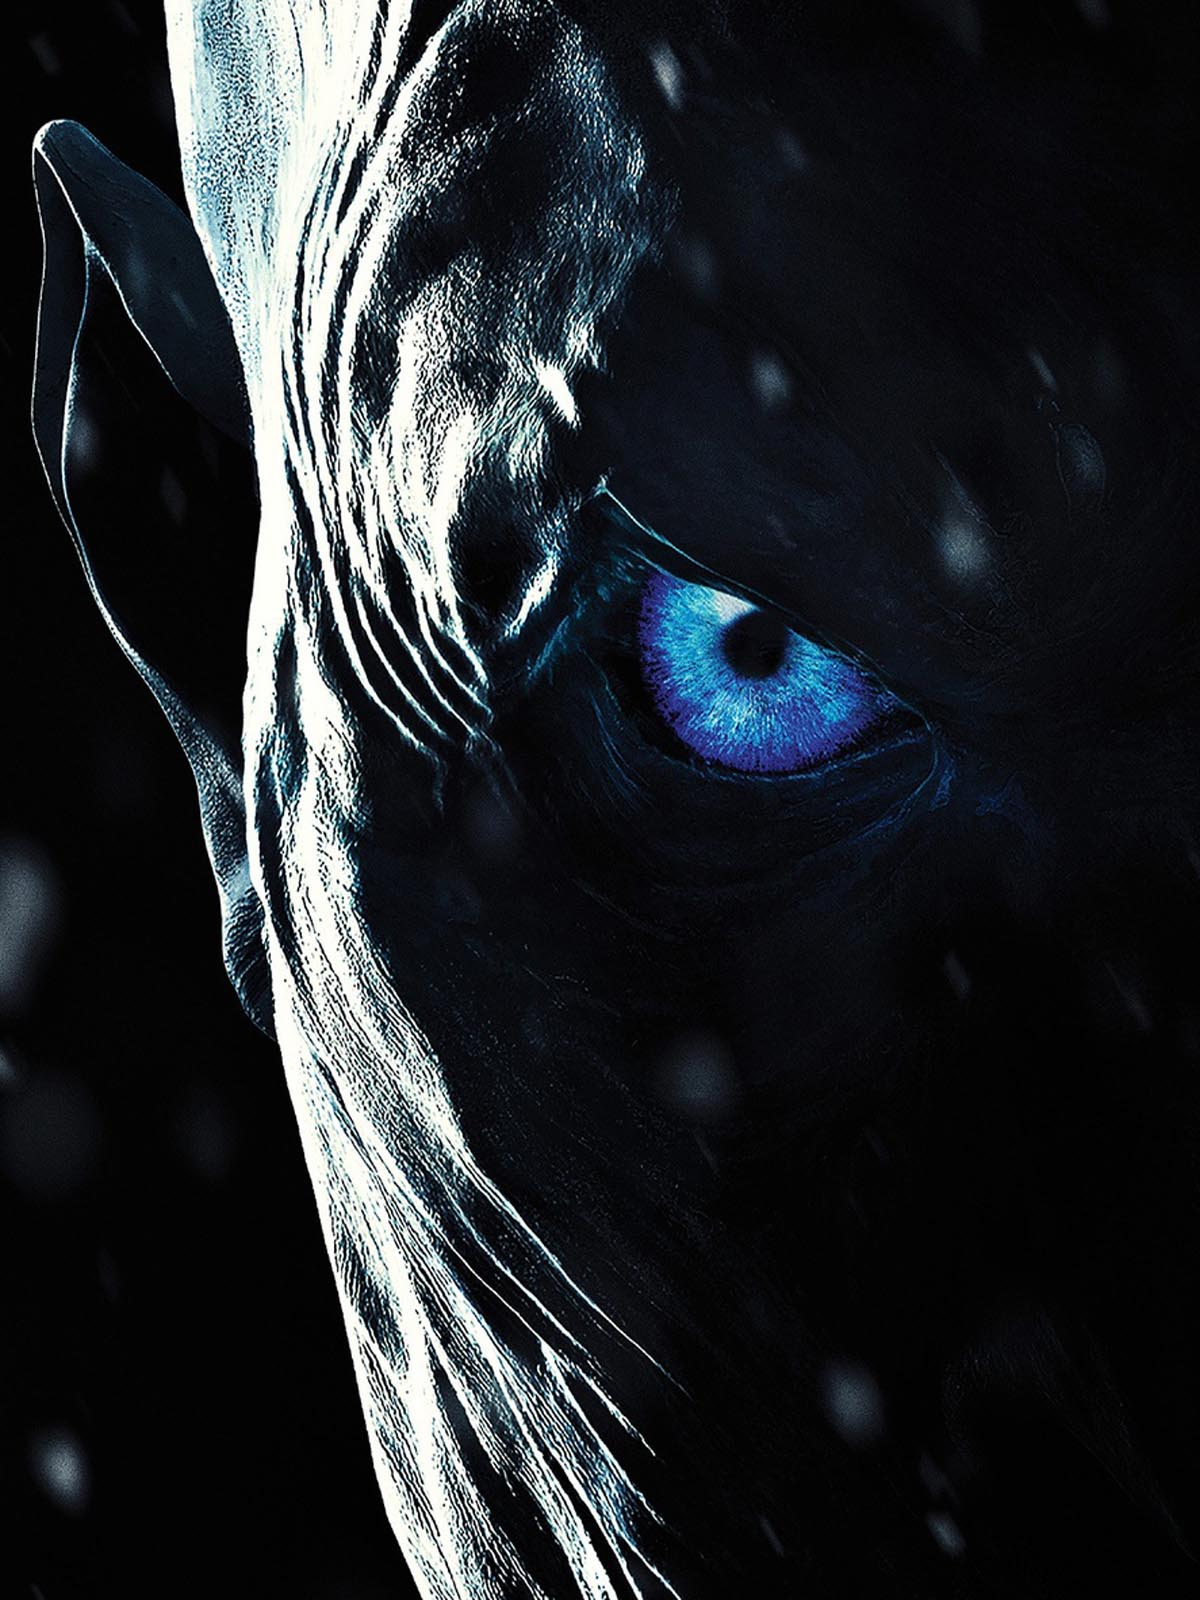 White Walkers In Game Of Thrones 7 Hd Mobile Wallpaper Download